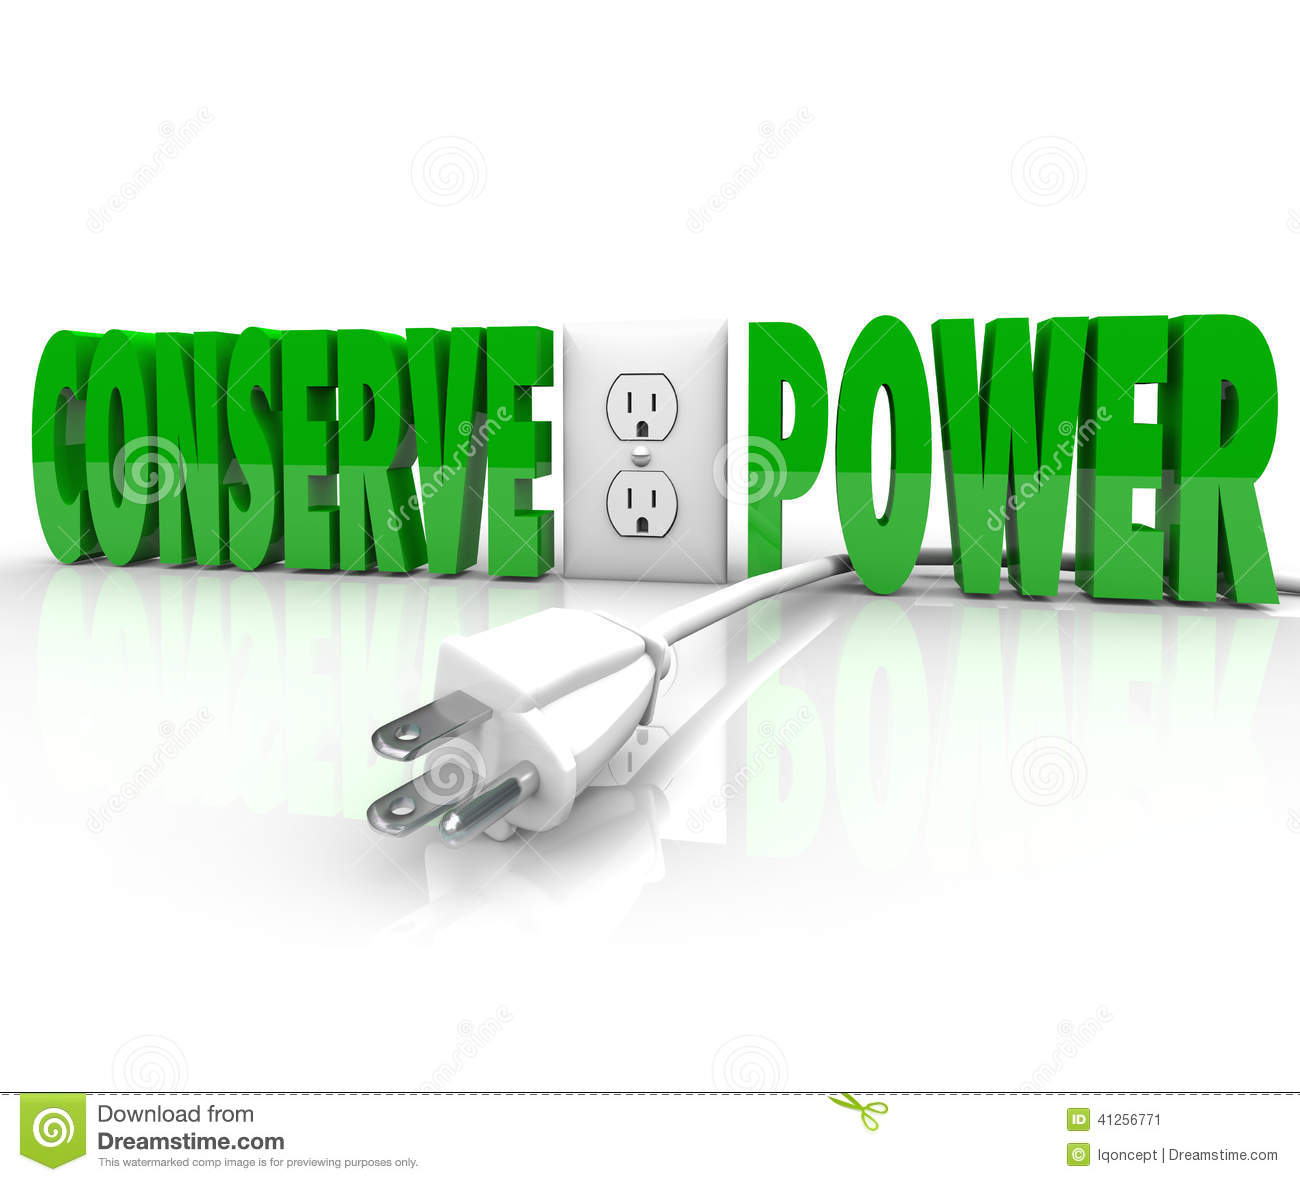 Conserve Electricity Conserve Power Electrical Cord Plug Save Energy Conservation Stock